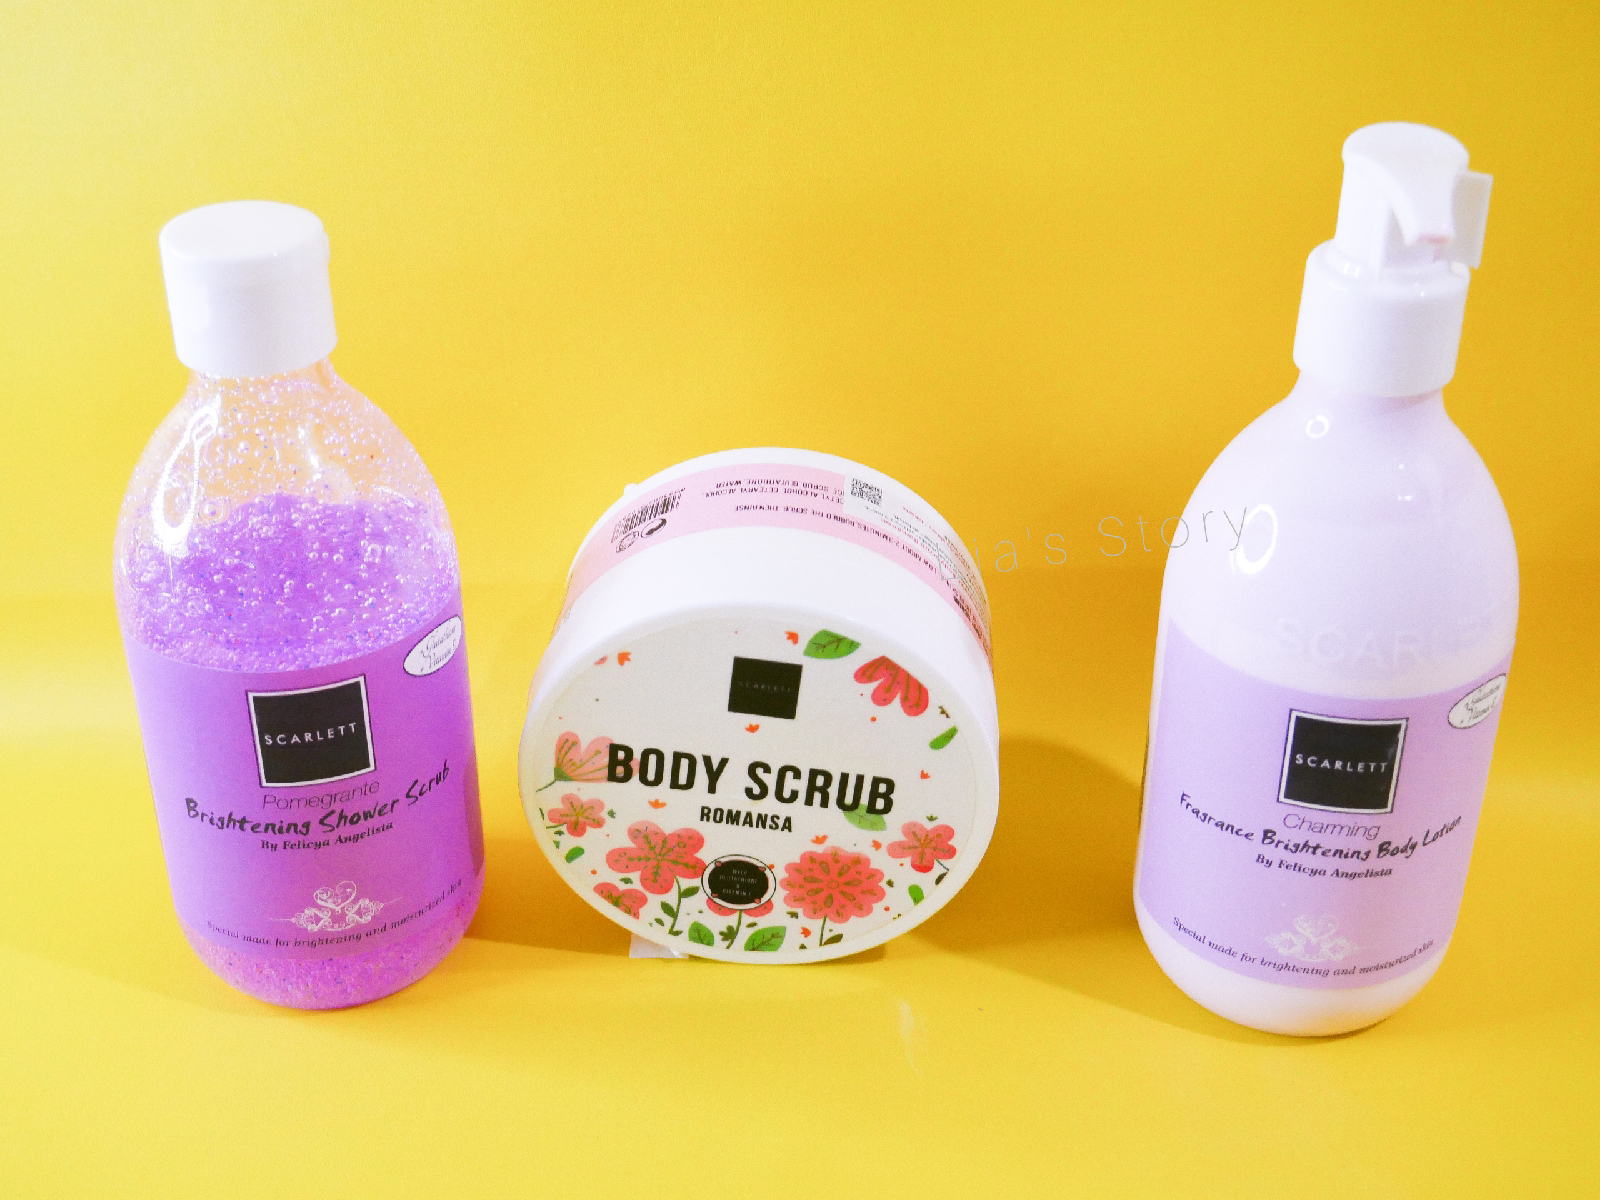 Review Scarlett Whitening Body Care Yang Mencerahkan Kulit Body Scrub Body Lotion Shower Scrub Lia S Story